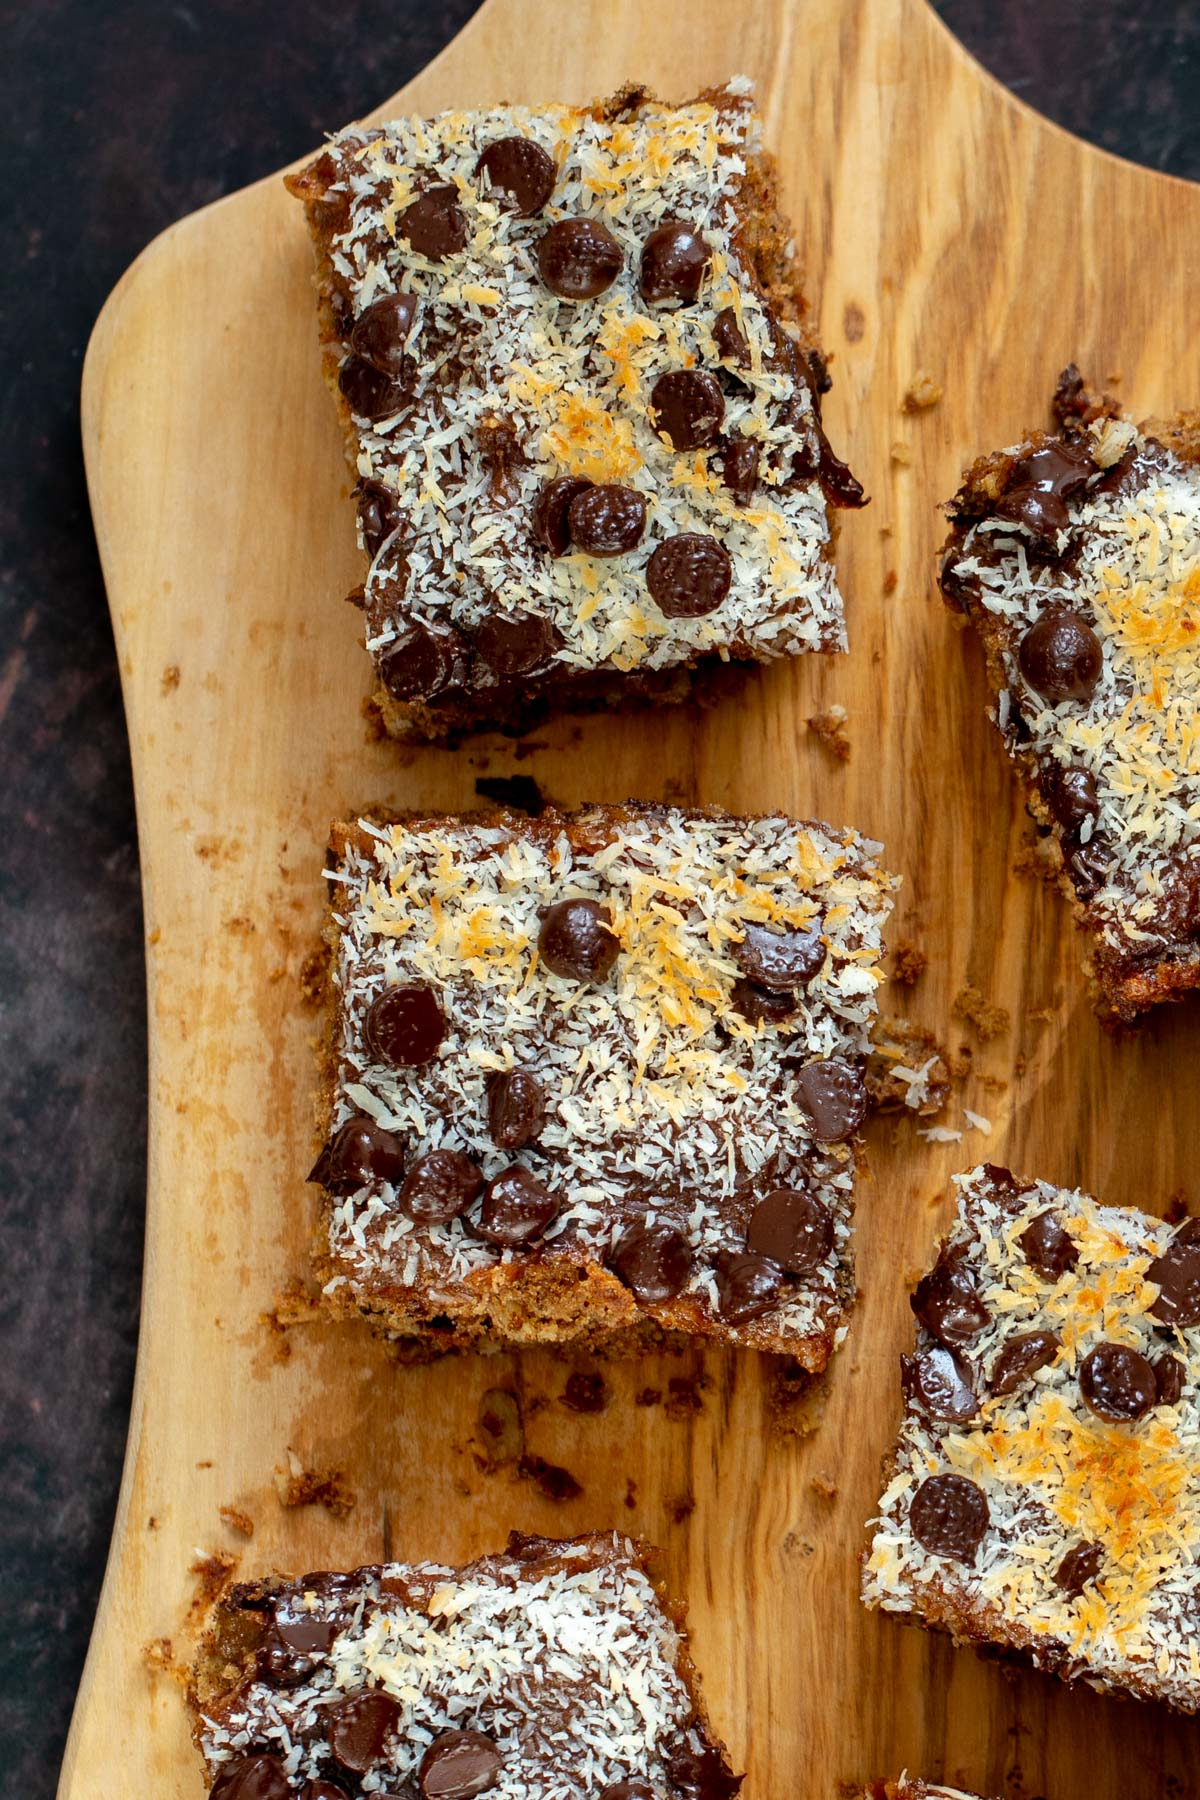 vegan oatmeal date caramel snack bars topped with shredded coconut and chocolate chips on a cutting board